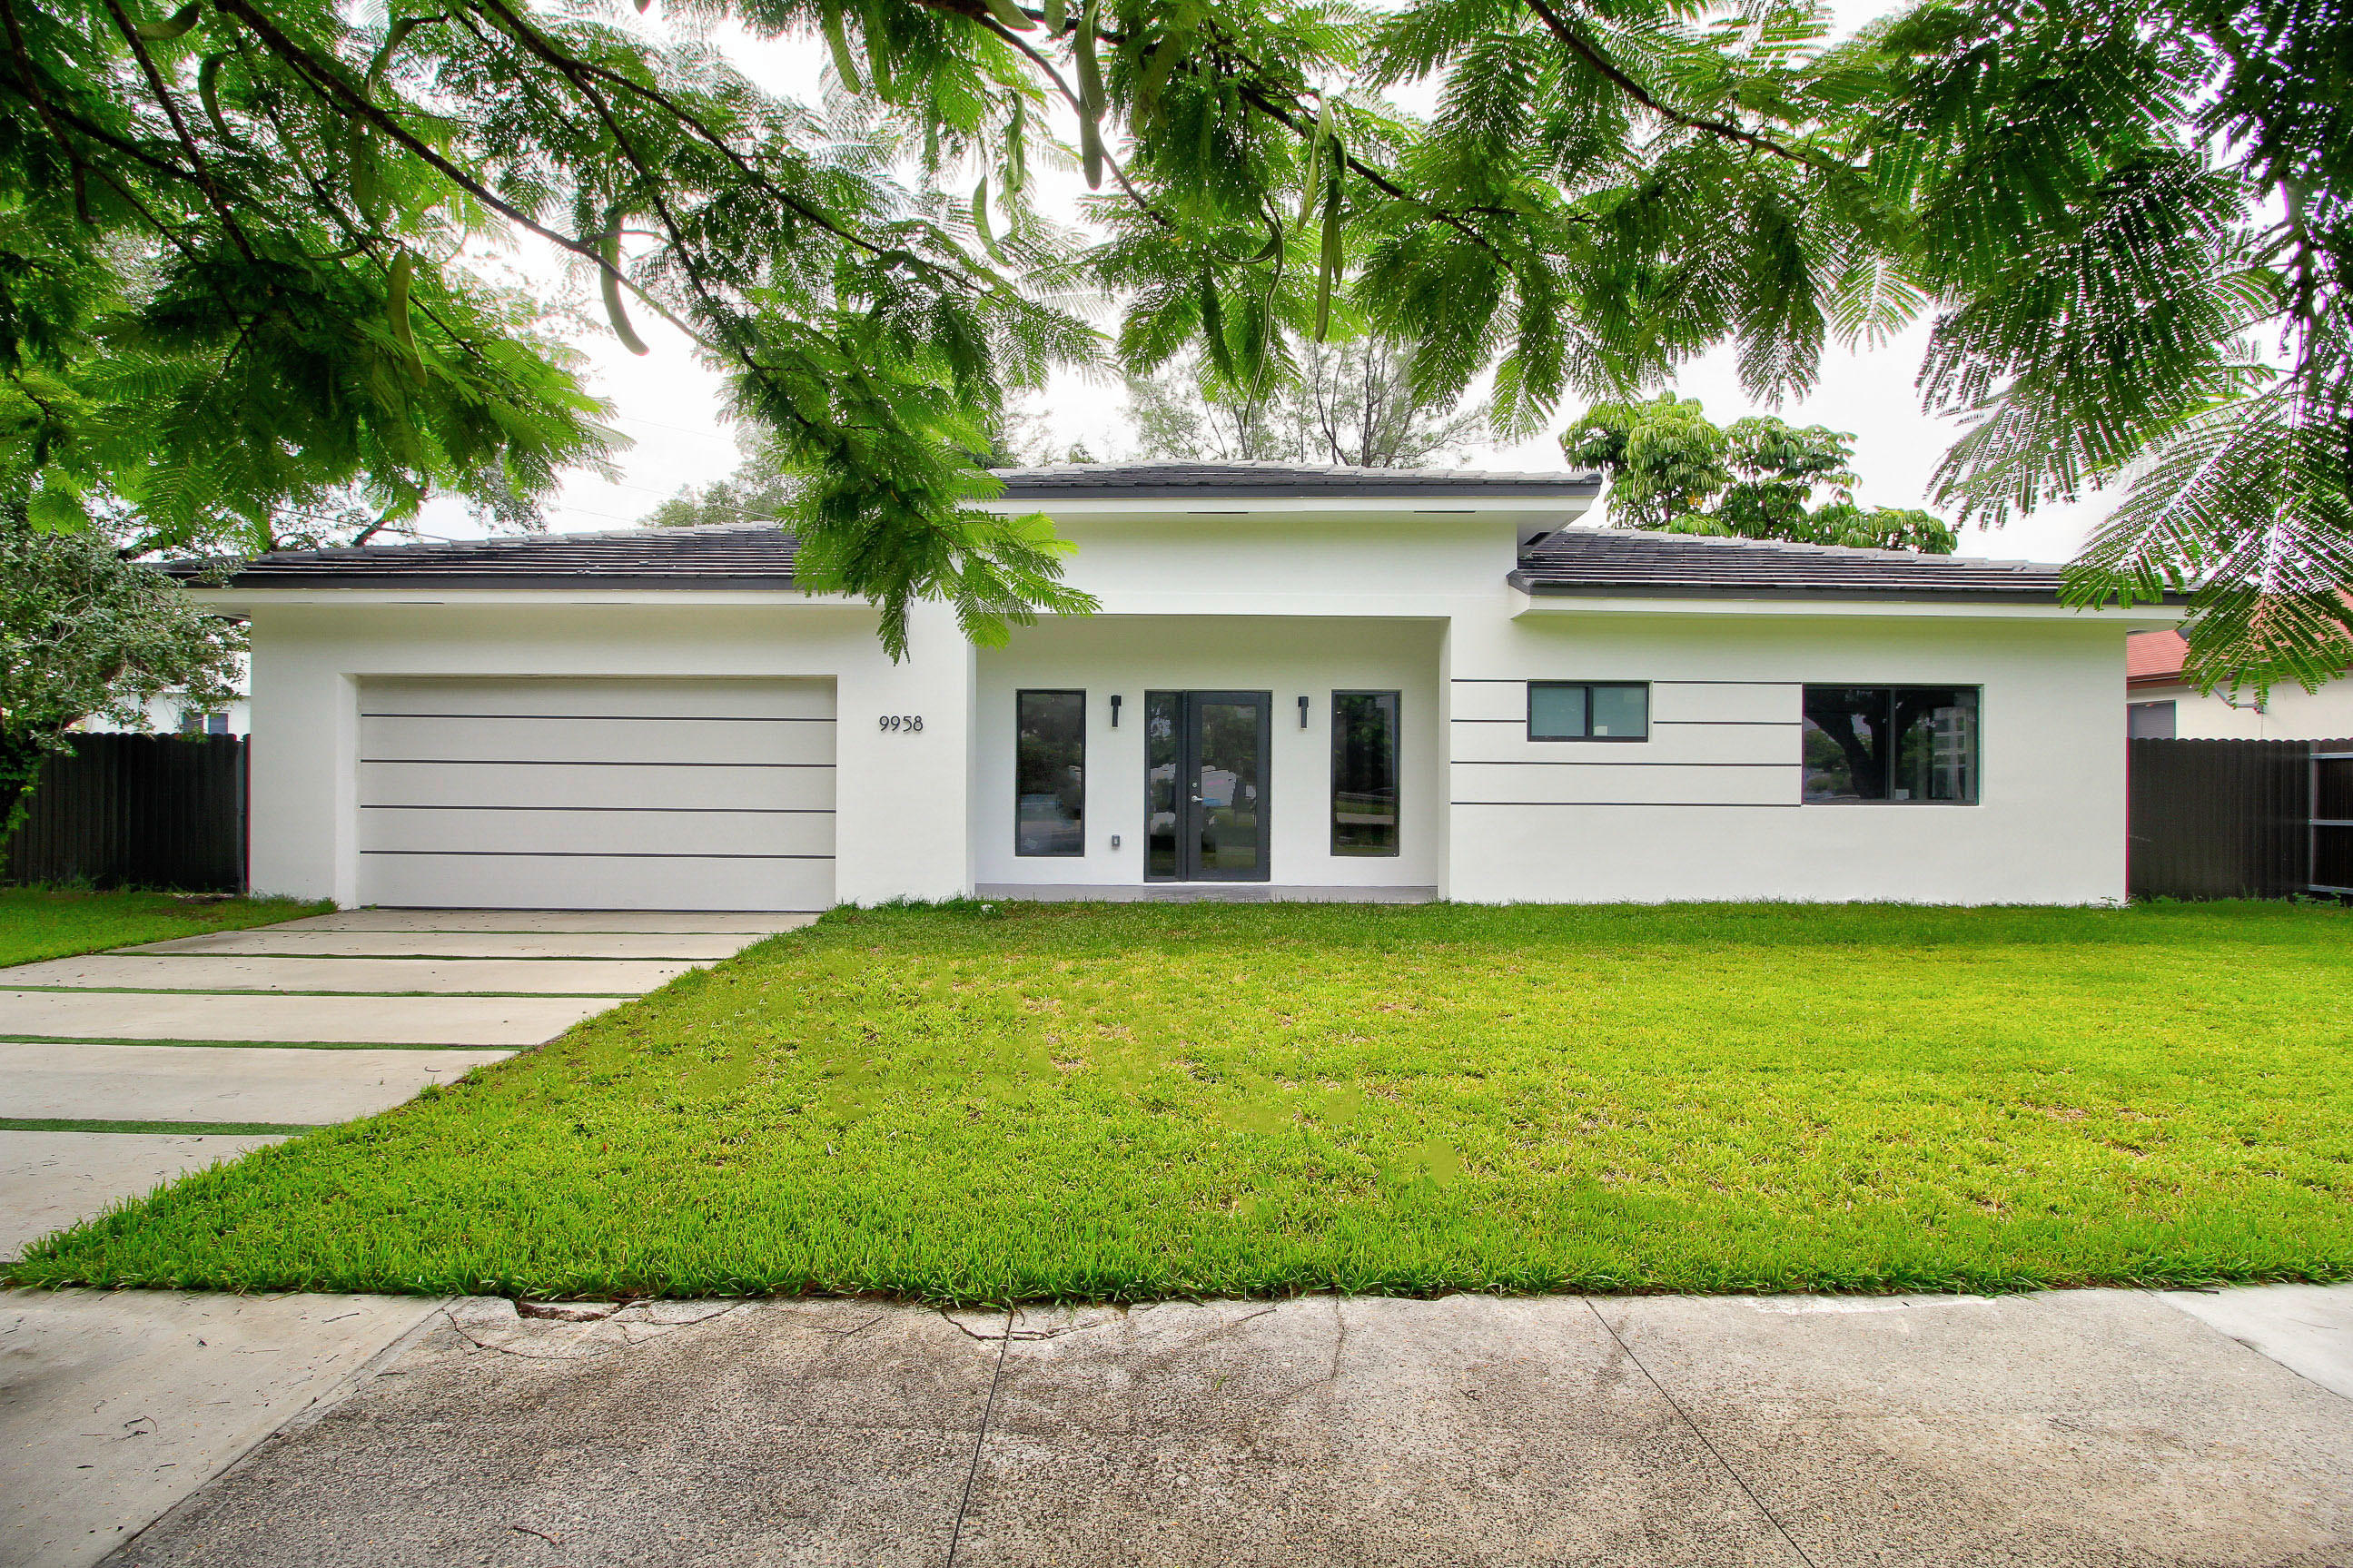 Image 1 For 9958 216th Street Sw